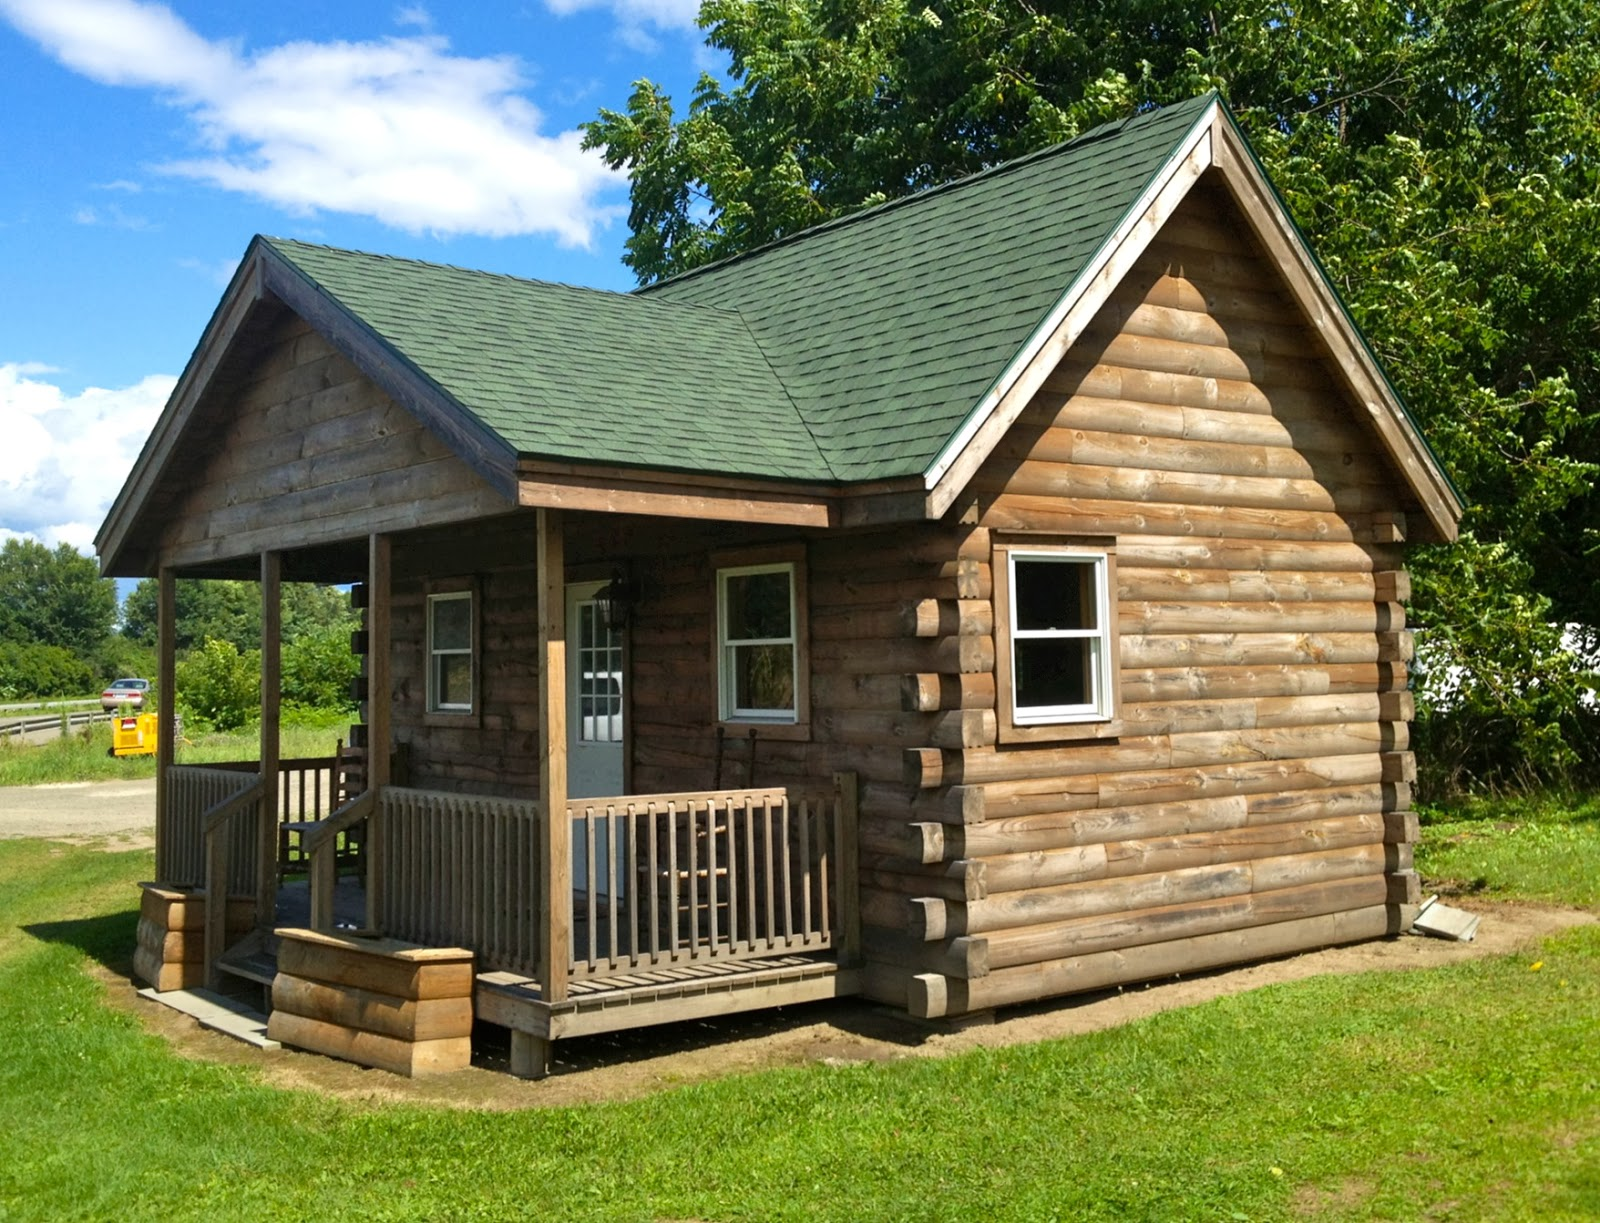 Small scale homes tiny home near binghamton ny for Tiny house design